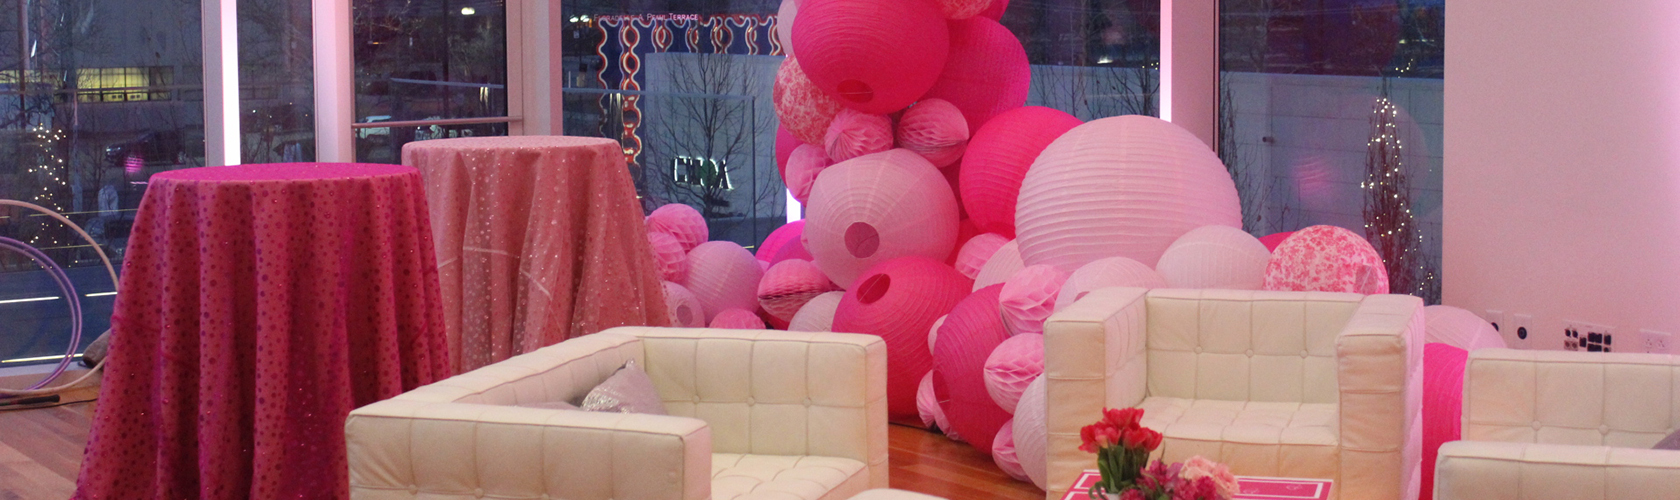 Venue vibrantly decorated for an event